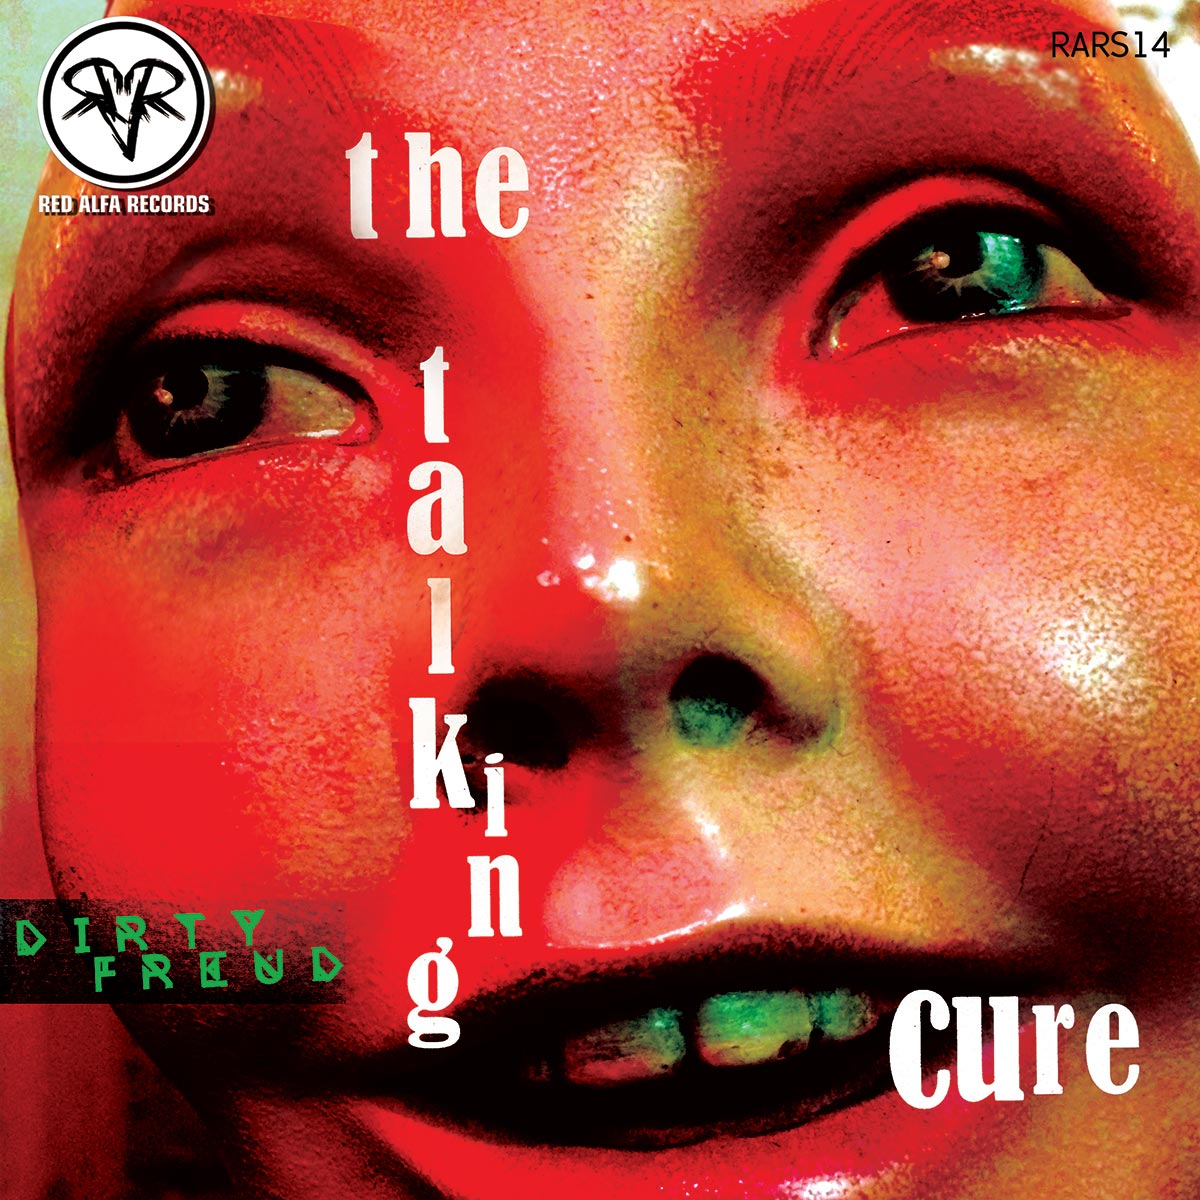 Talking Cure EP, Dirty Freud, dance, electro, electronica, ep sleeve, album cover, album art, art direction, design, Ben Tallon